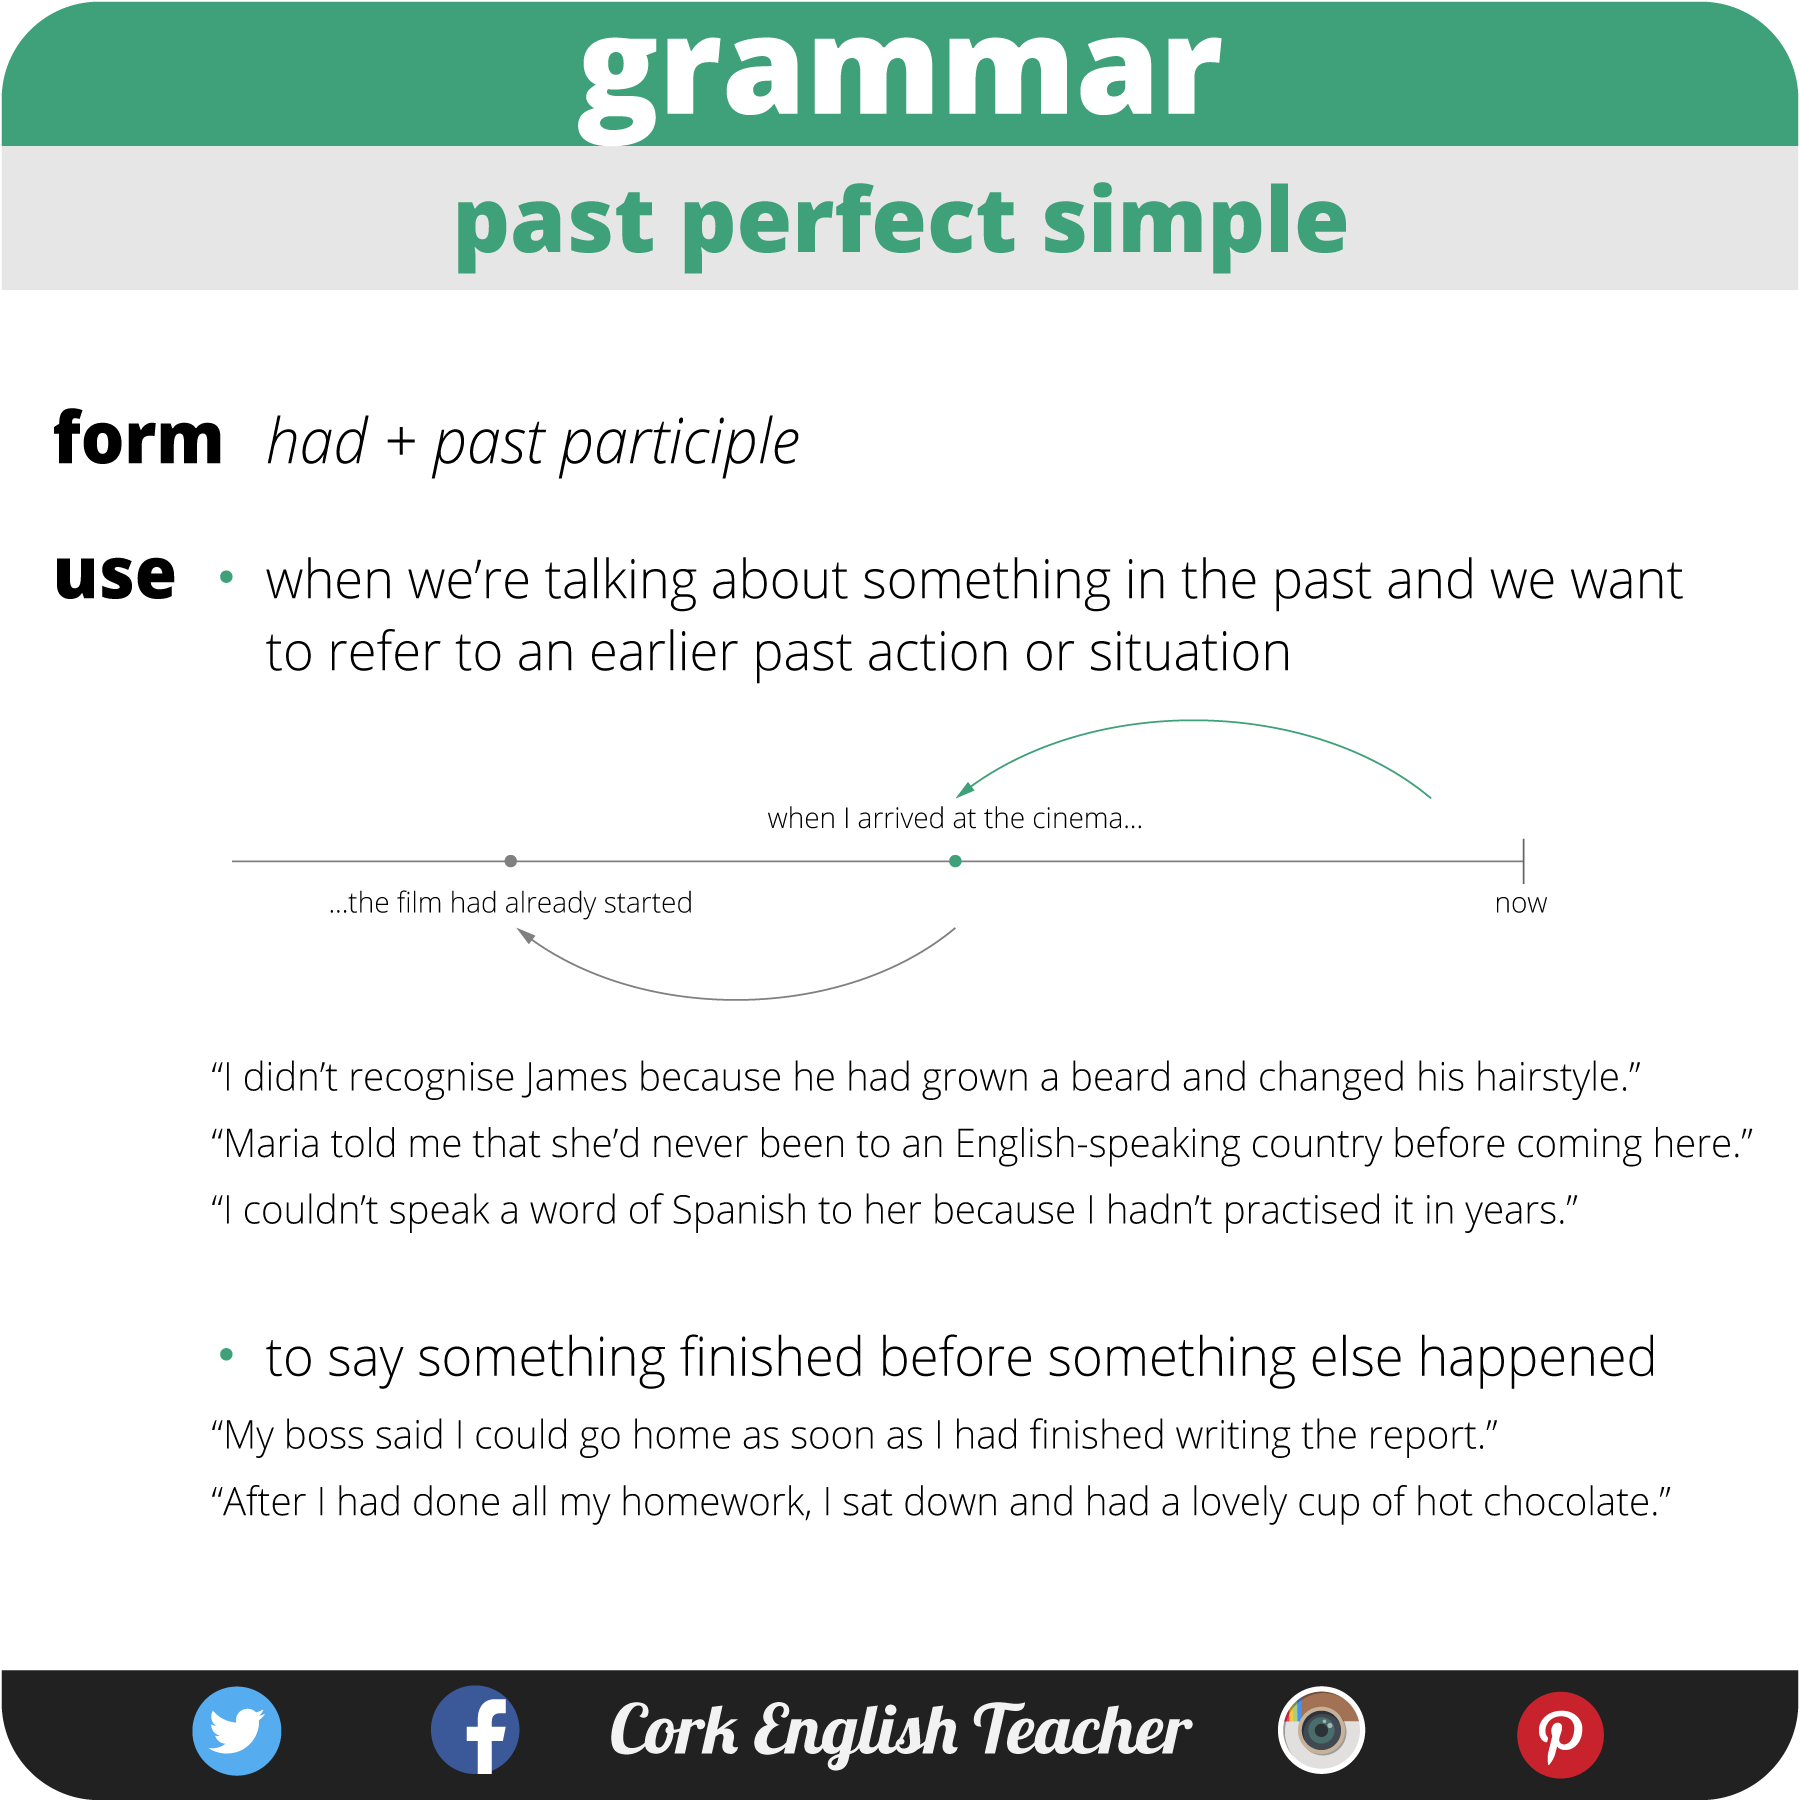 cork english teacher on twitter past perfect simple done cork english teacher on twitter past perfect simple done englishgrammar english learnenglish esl elt fce t co 2wcpfugdzi